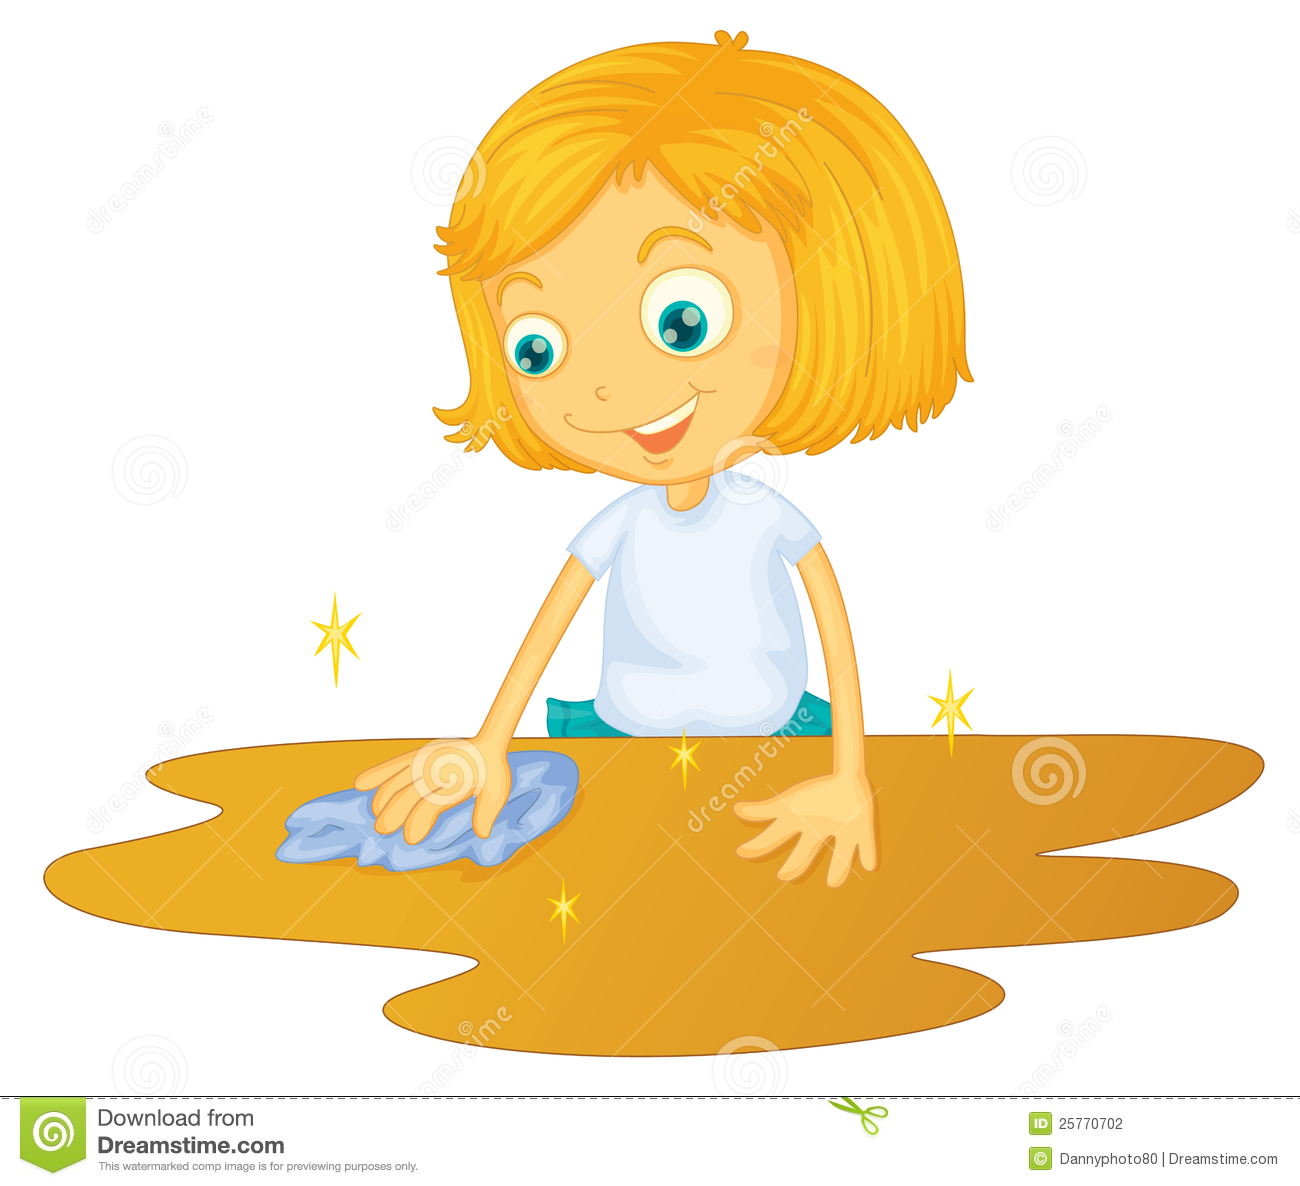 Cleaning Black Kitchen Table: Wipe Clipart